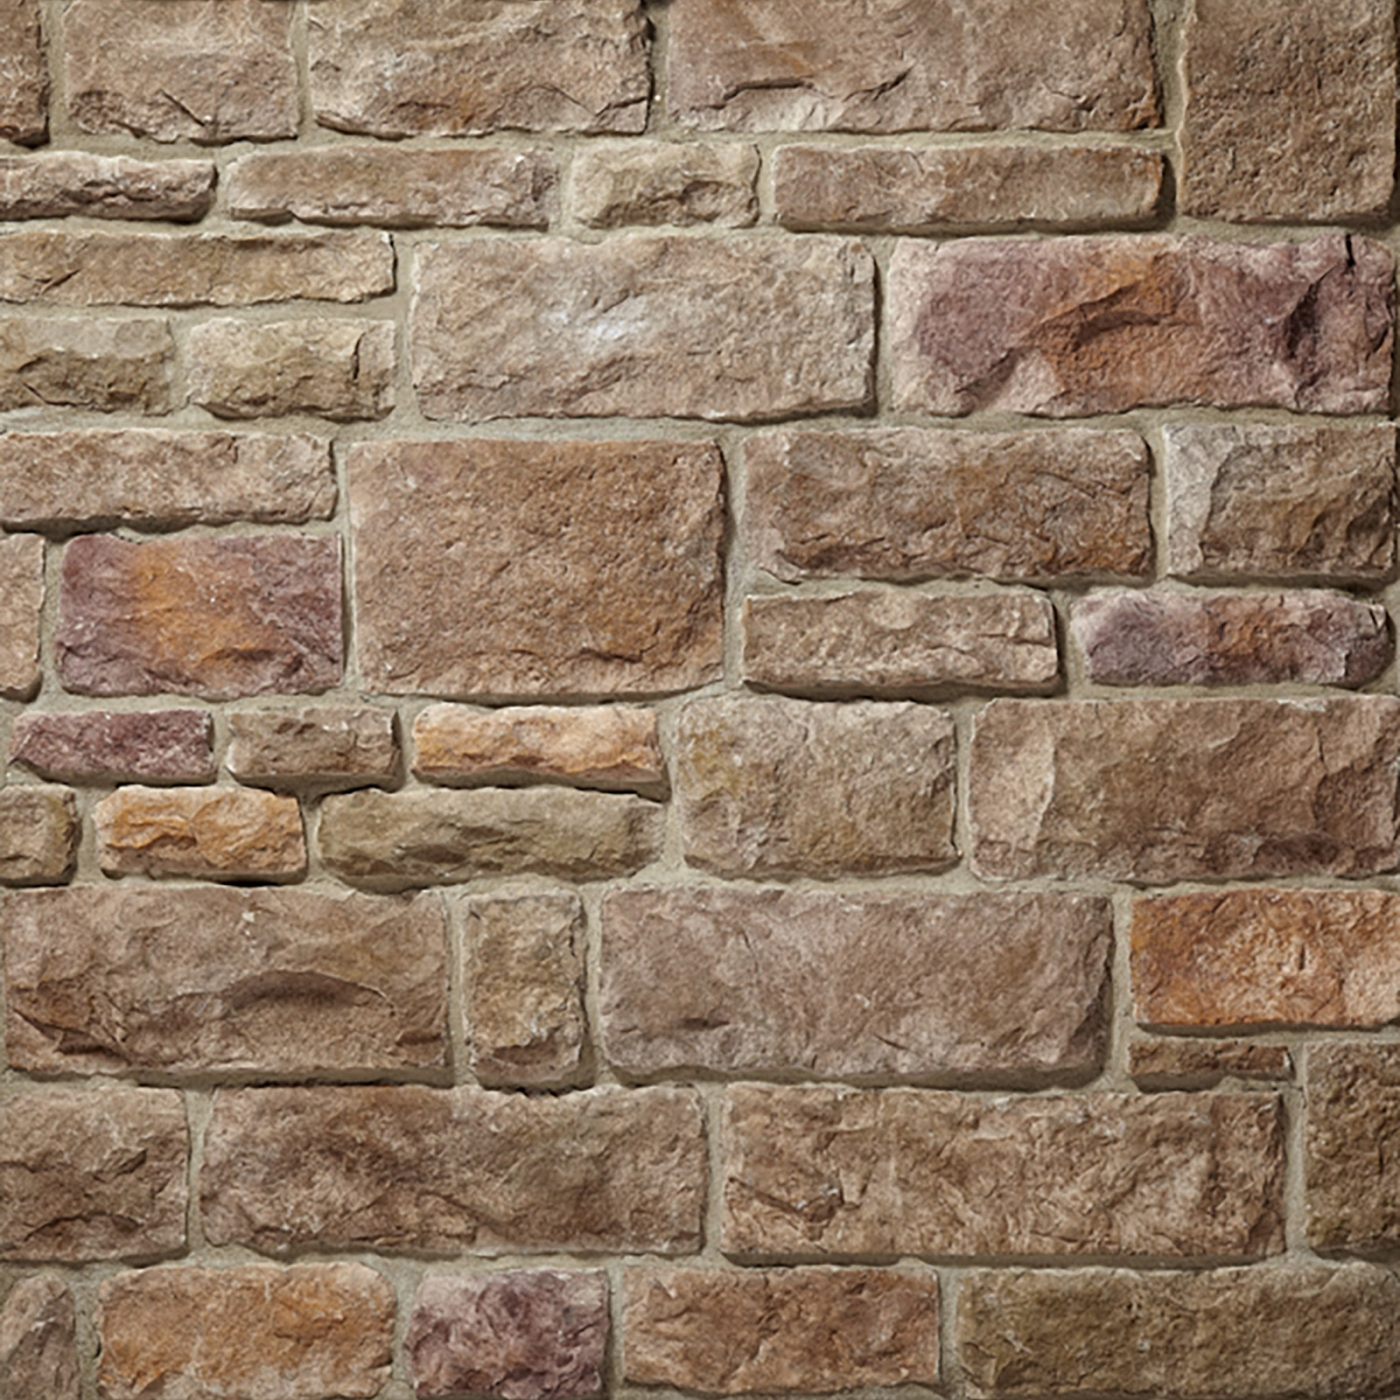 Buckeye Cut Stone Stone Veneer from Environmental StoneWorks